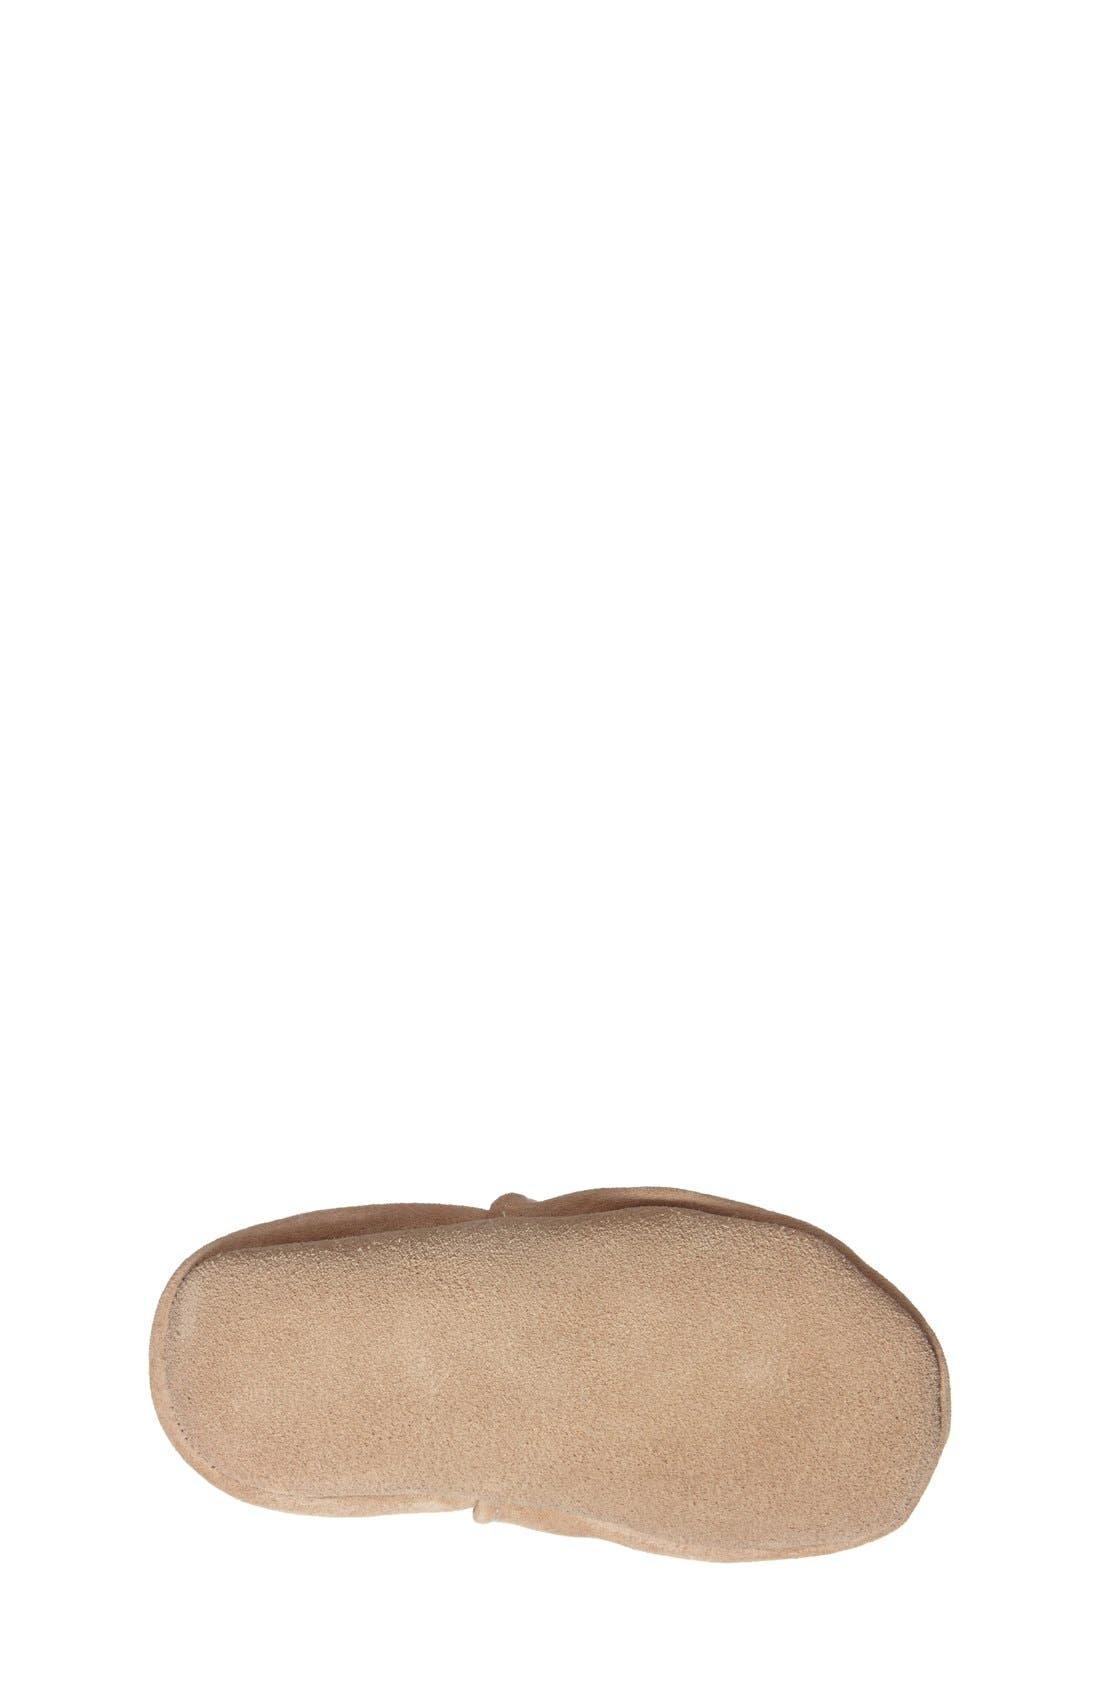 Cozy Moccasin Crib Shoe,                             Alternate thumbnail 4, color,                             Taupe